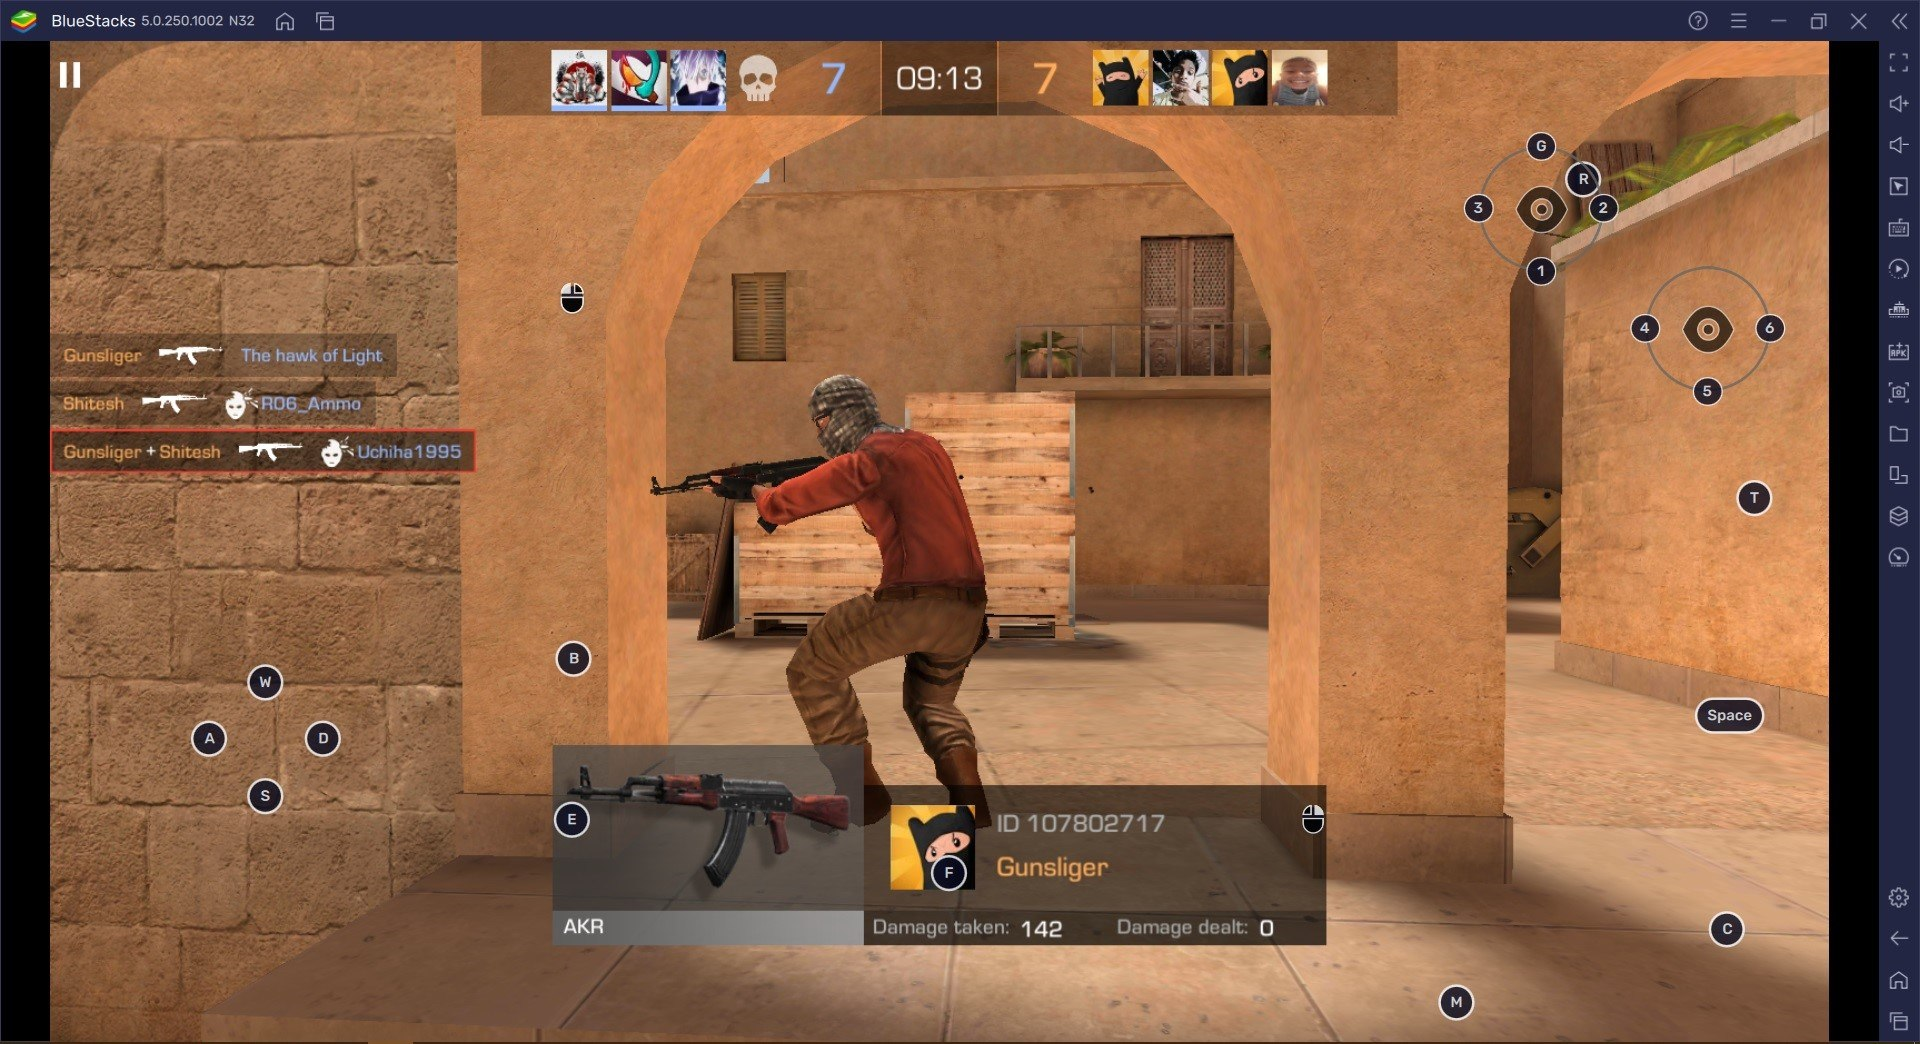 Standoff 2 Guide to Peeking: Get No Scoped Headshots with Ease